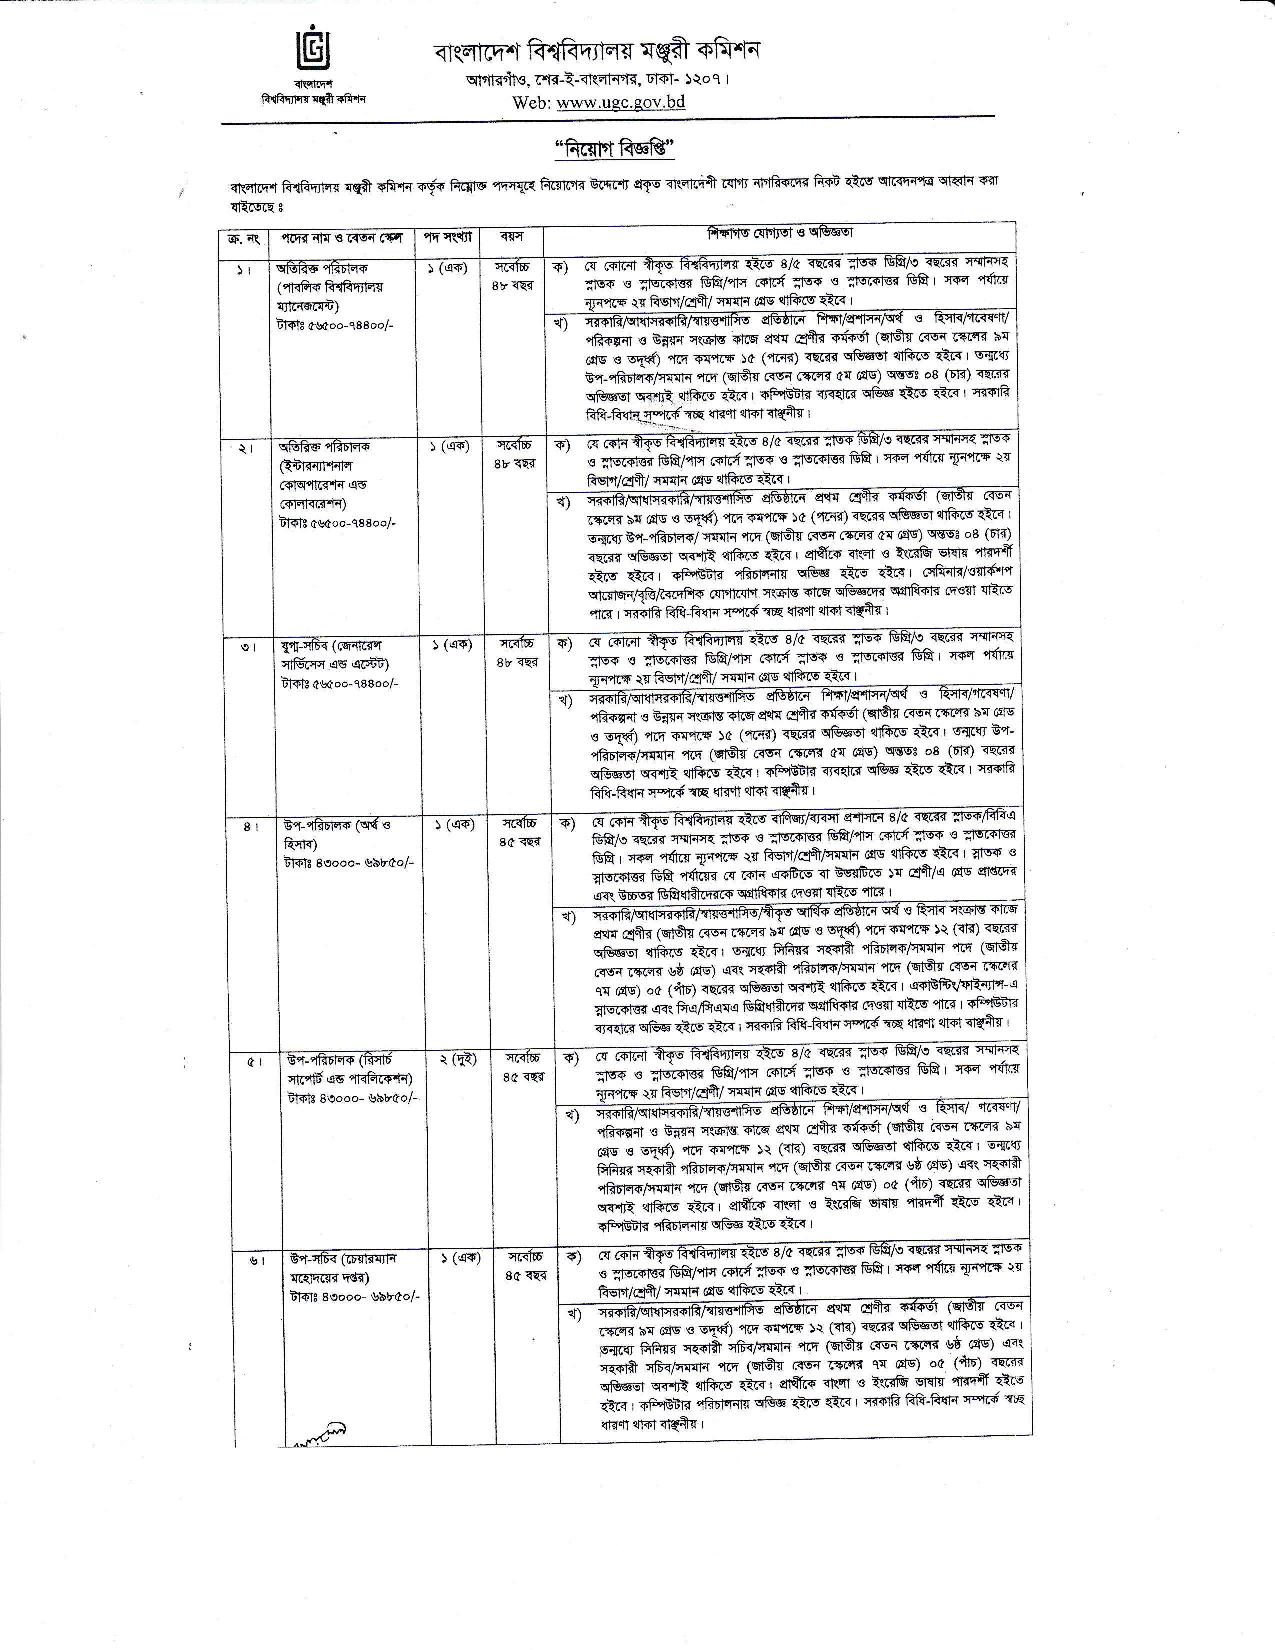 Bangladesh University Grants Commission UGC Job Circular 2018 1